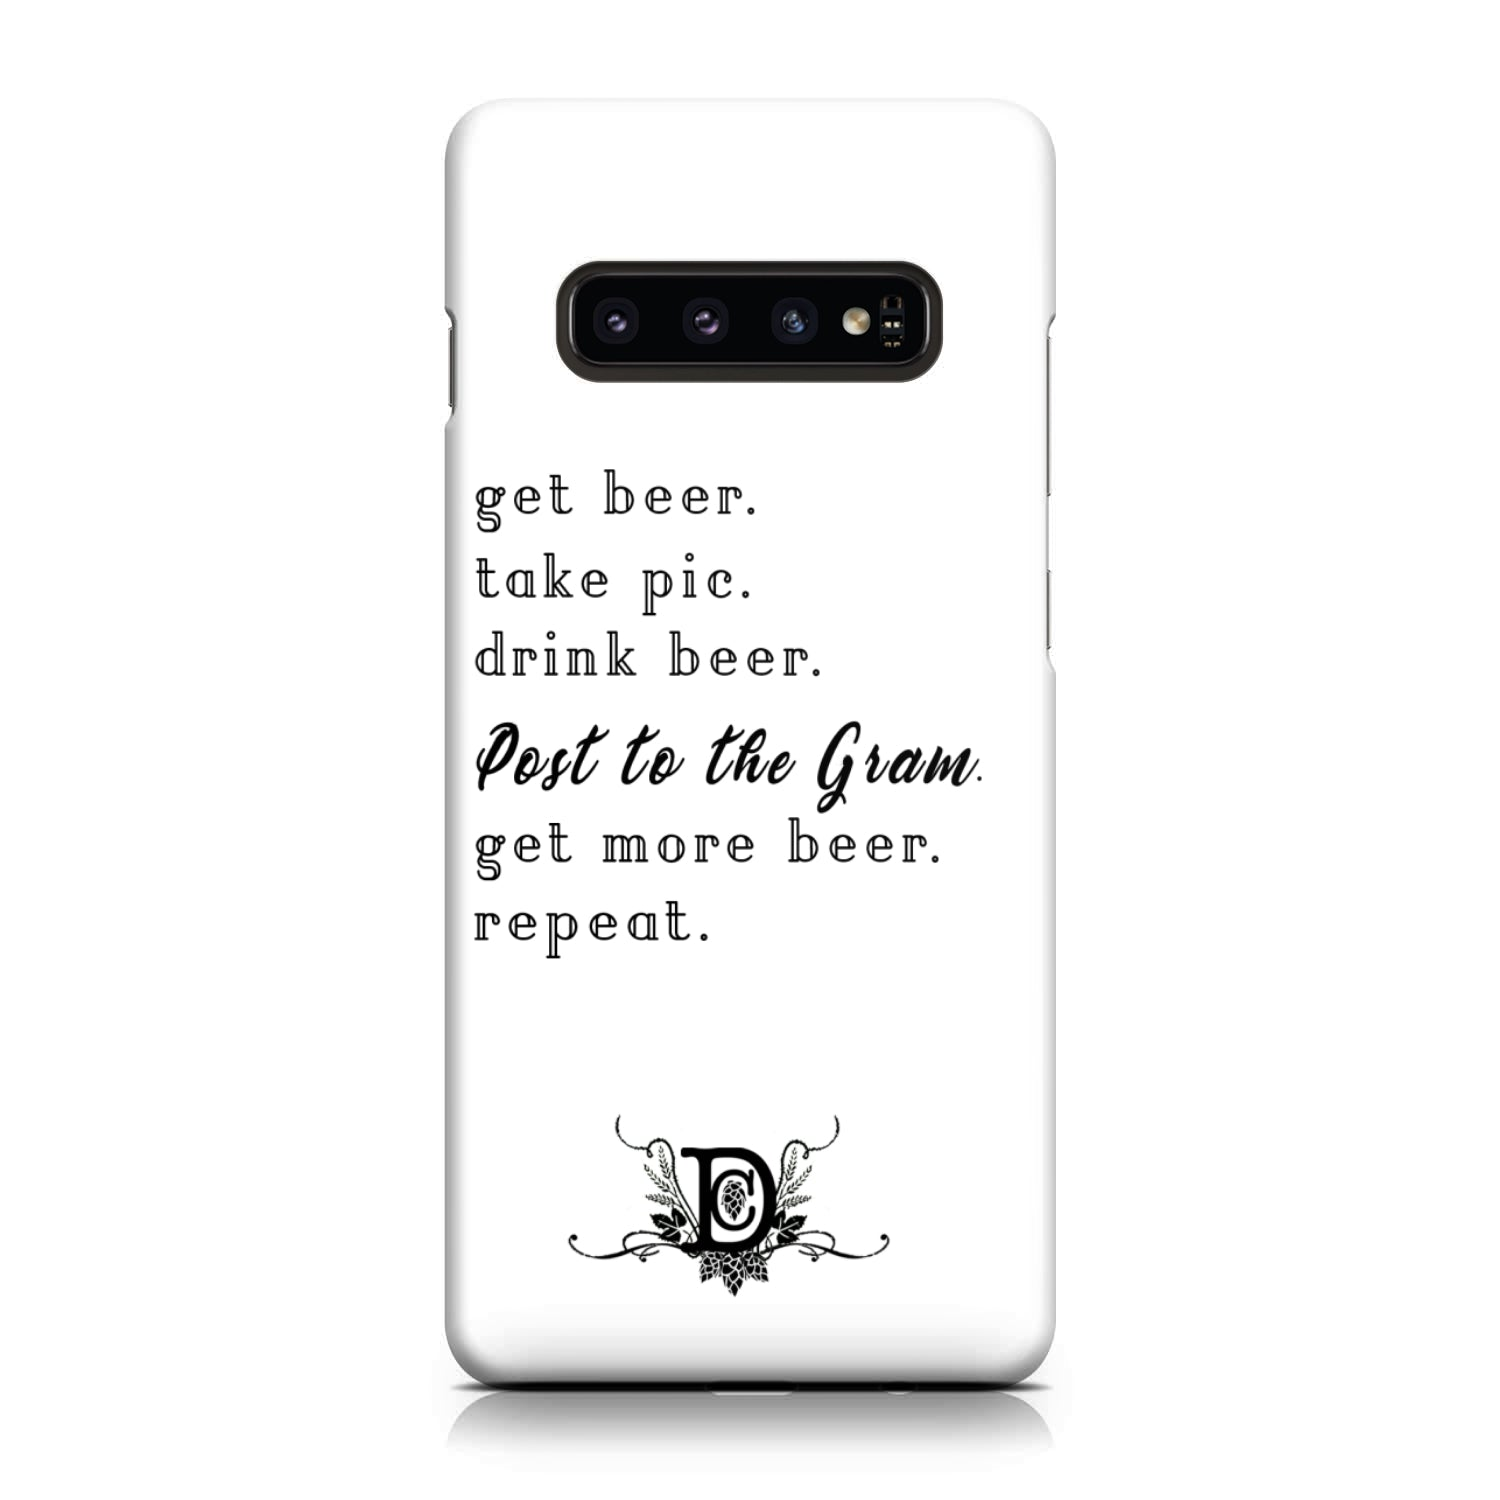 Post To The Gram Slim Phone Case